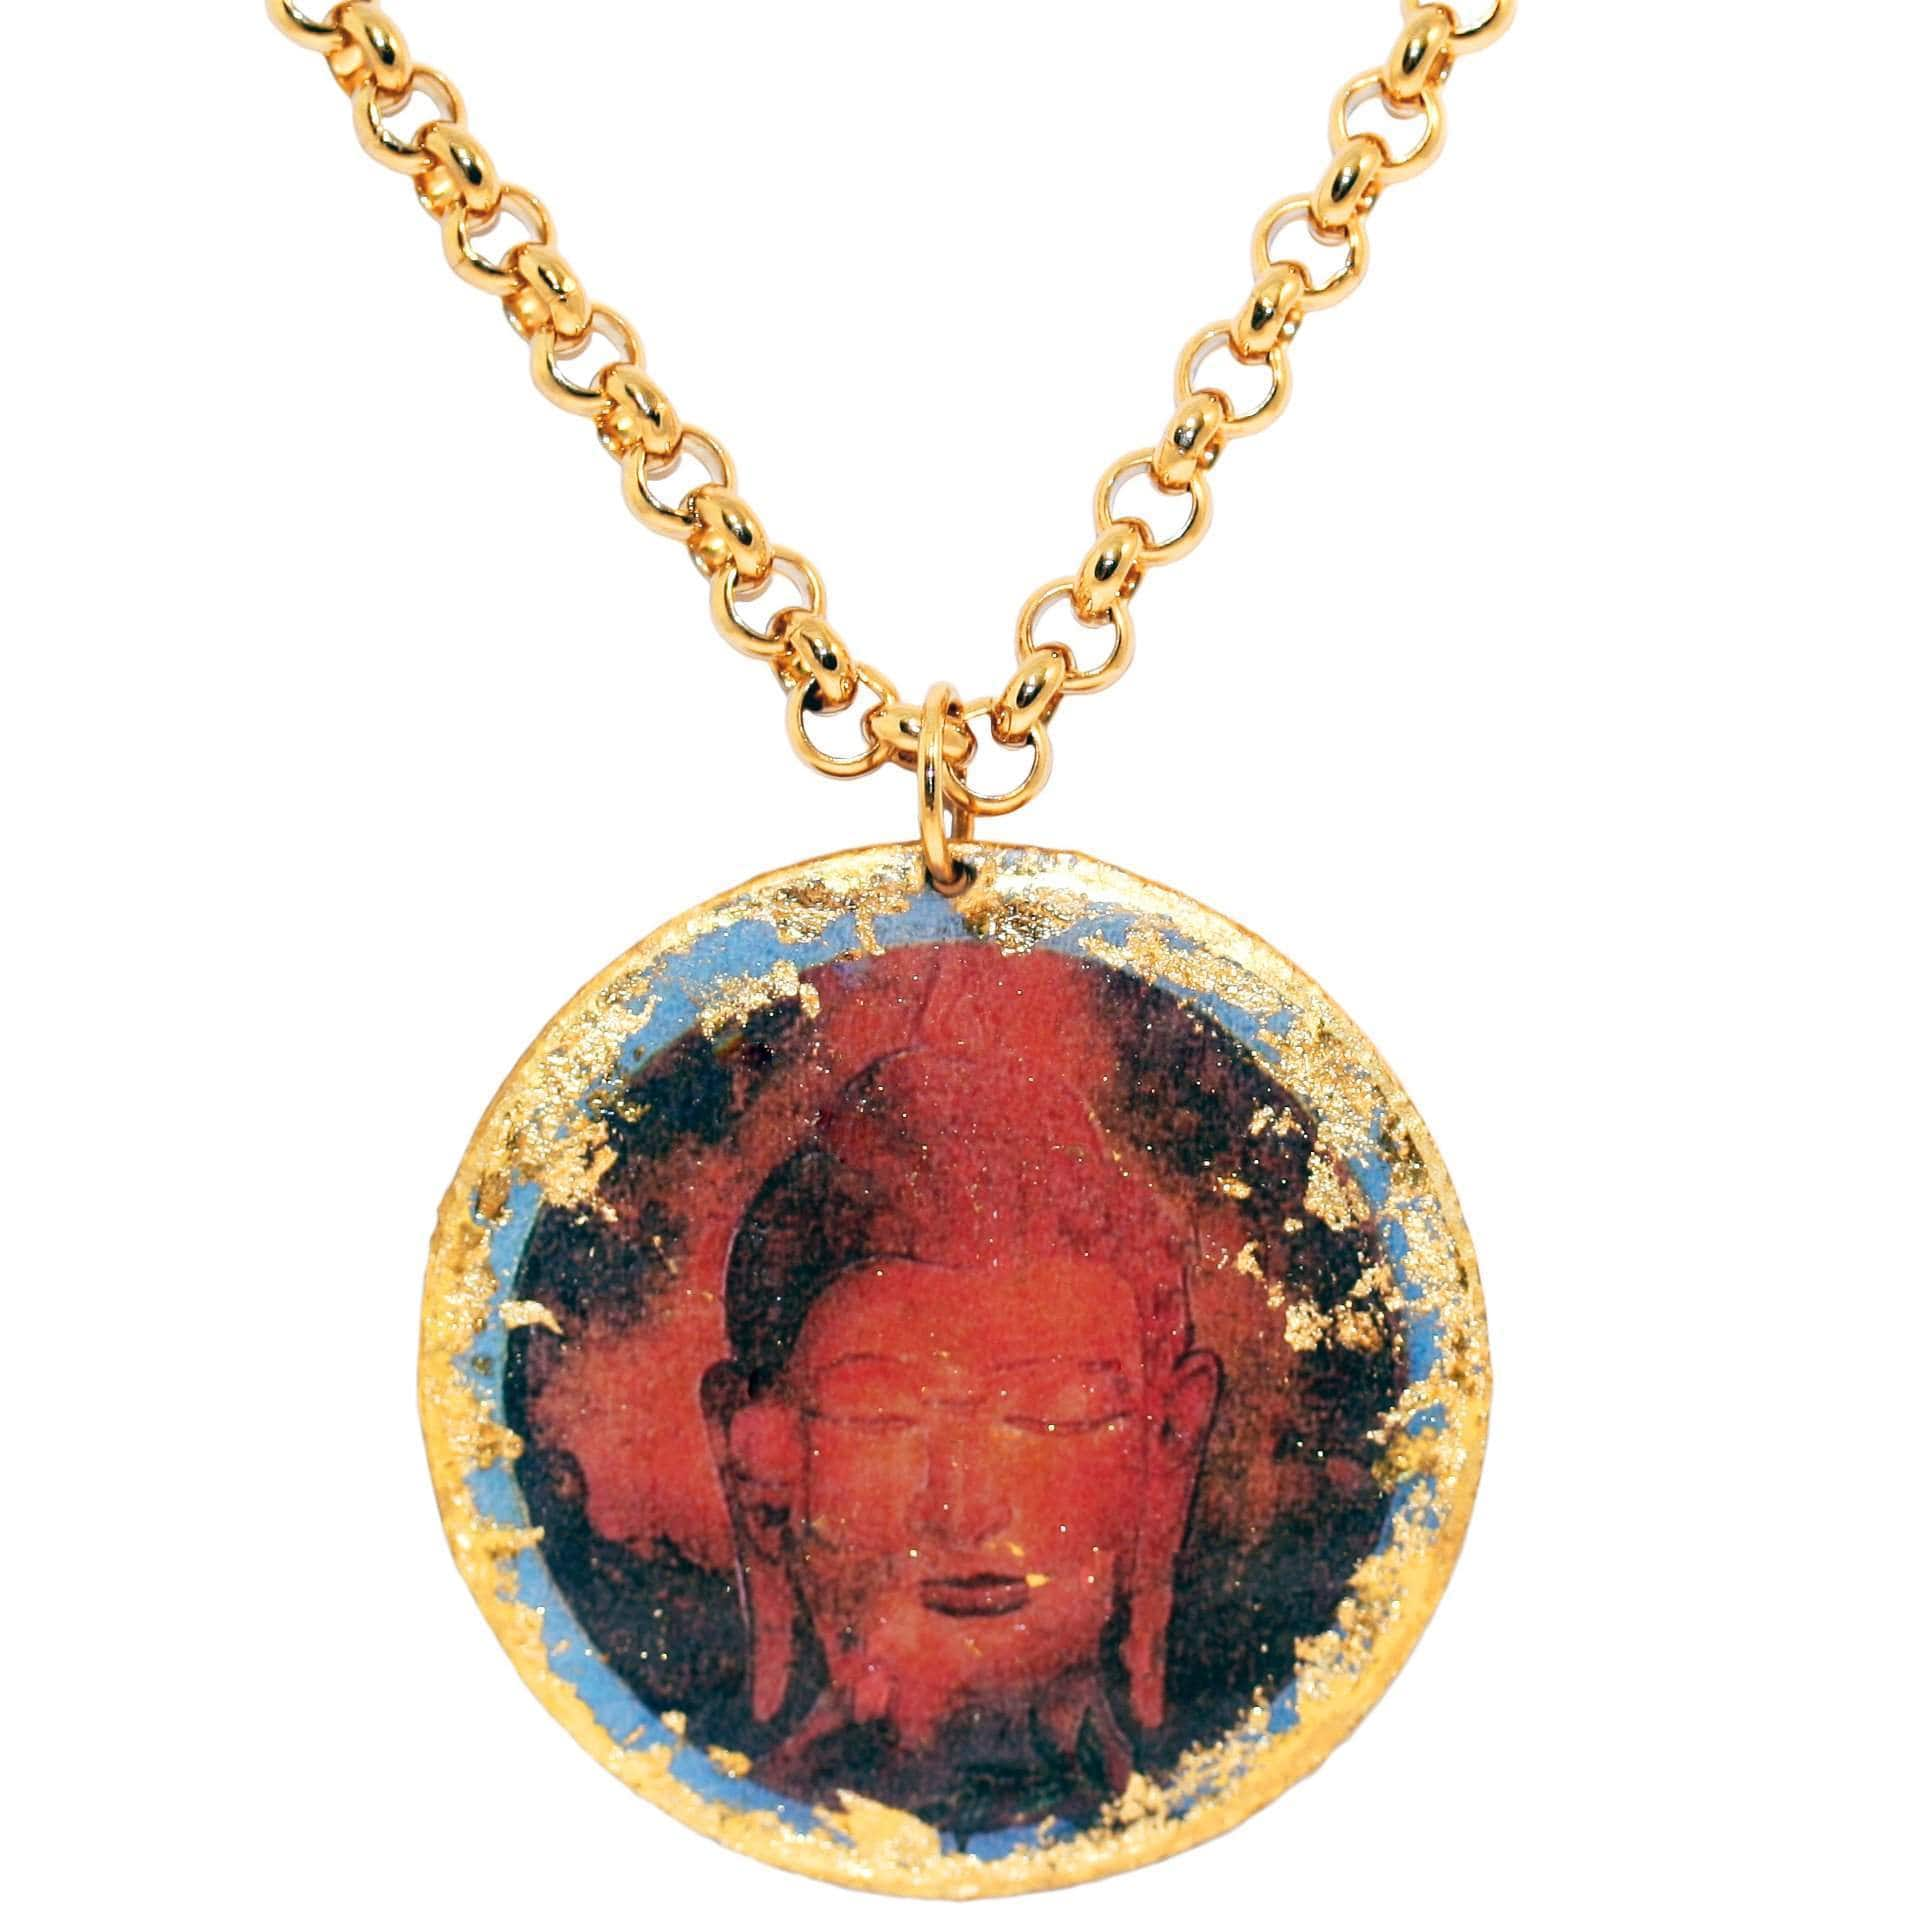 "Buddha Blue 17"" Gold Pendant - SL205-Evocateur-Renee Taylor Gallery"